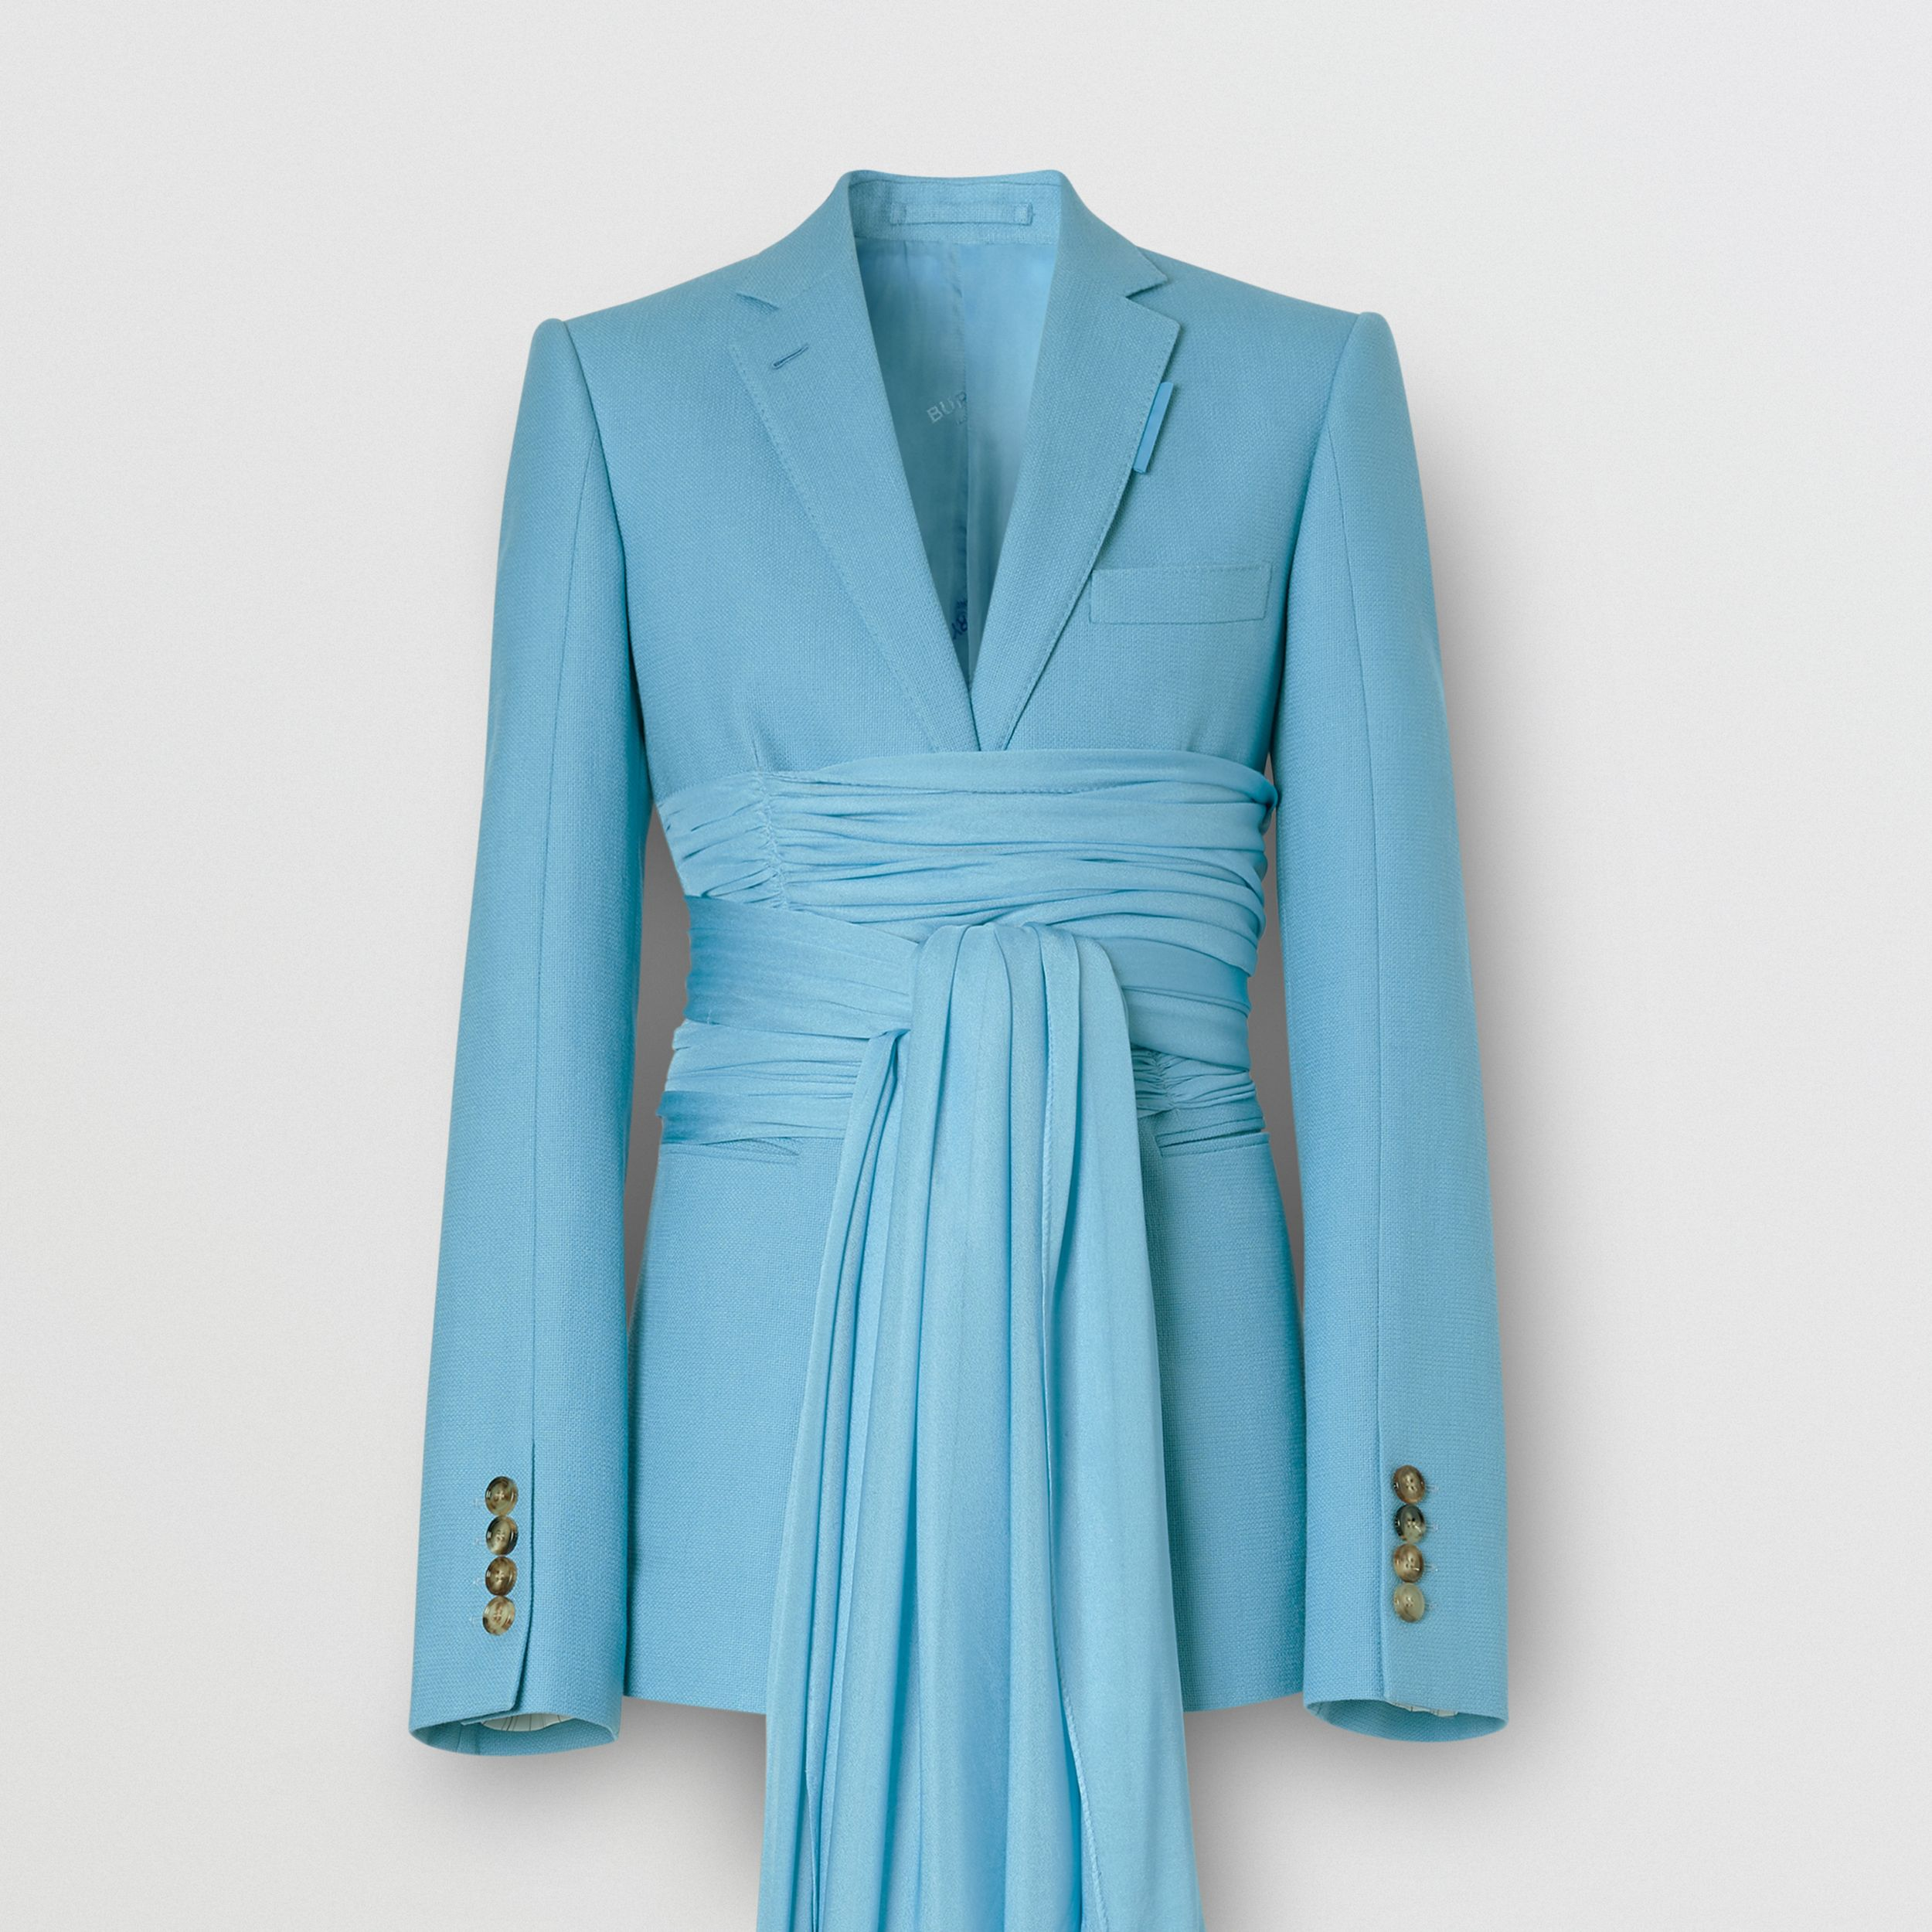 Jersey Sash Detail Wool Ramie Tailored Jacket in Blue Topaz - Women | Burberry Hong Kong S.A.R. - 4